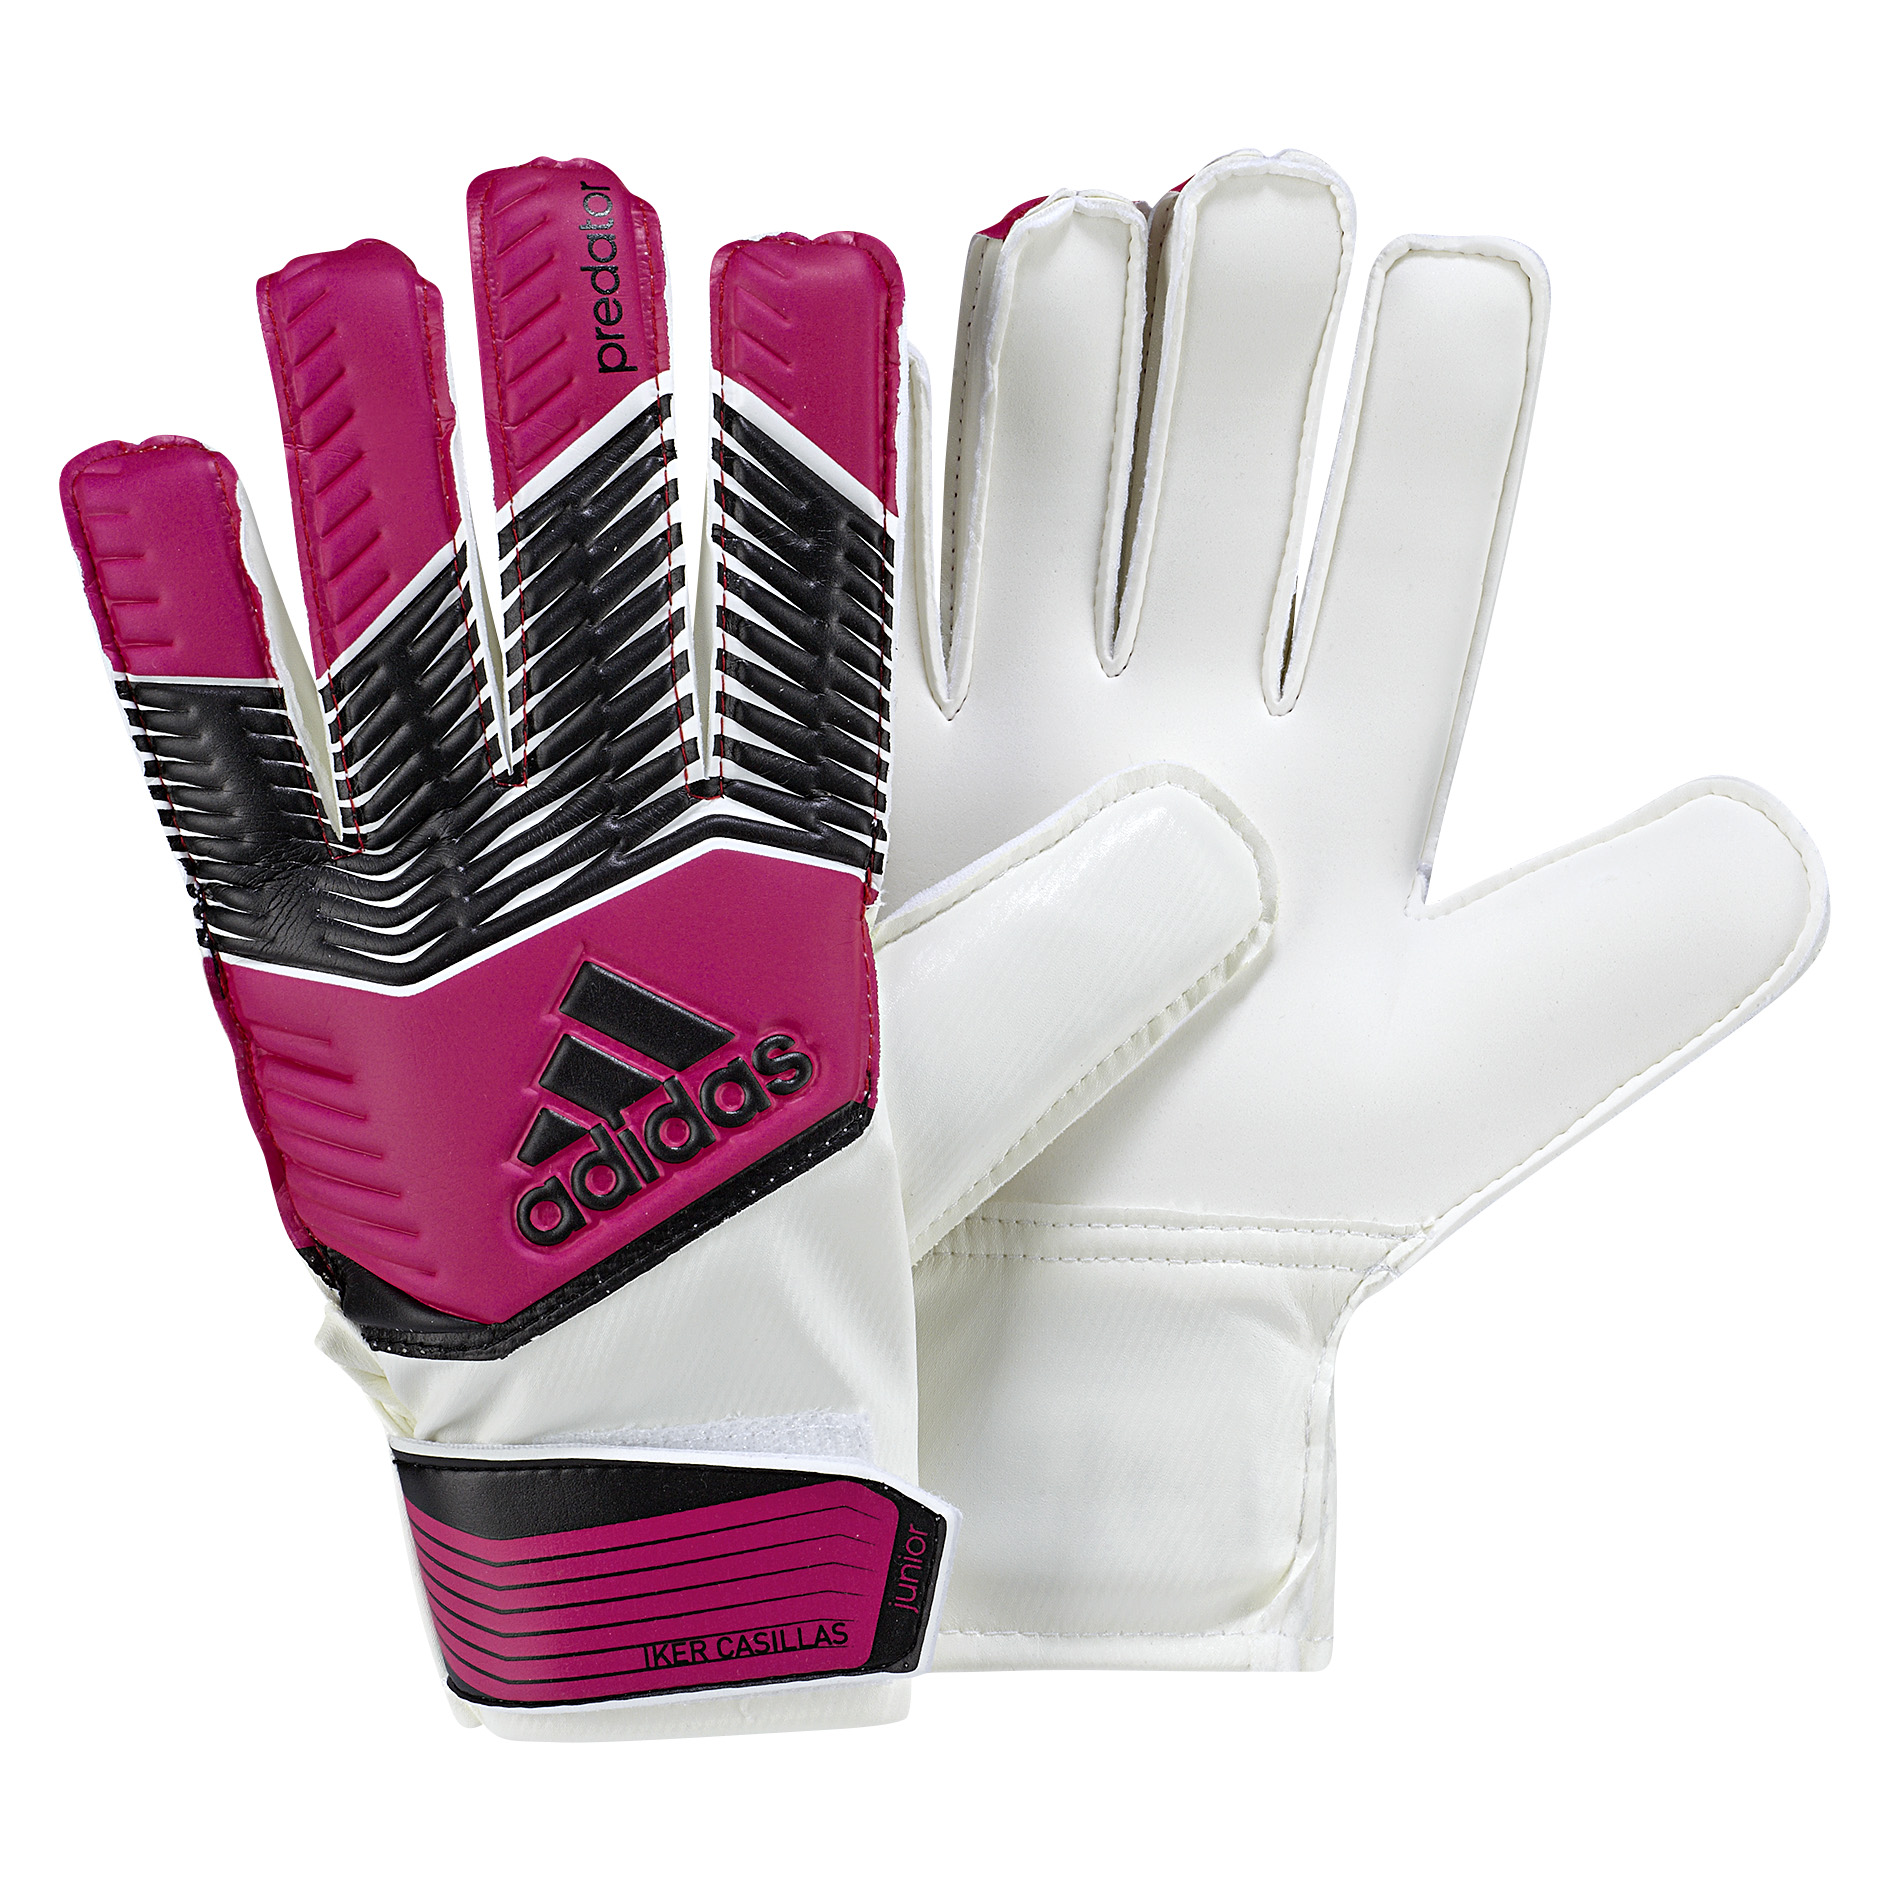 Adidas Predator Iker Casillas Goalkeeper Glove - Kids Pink